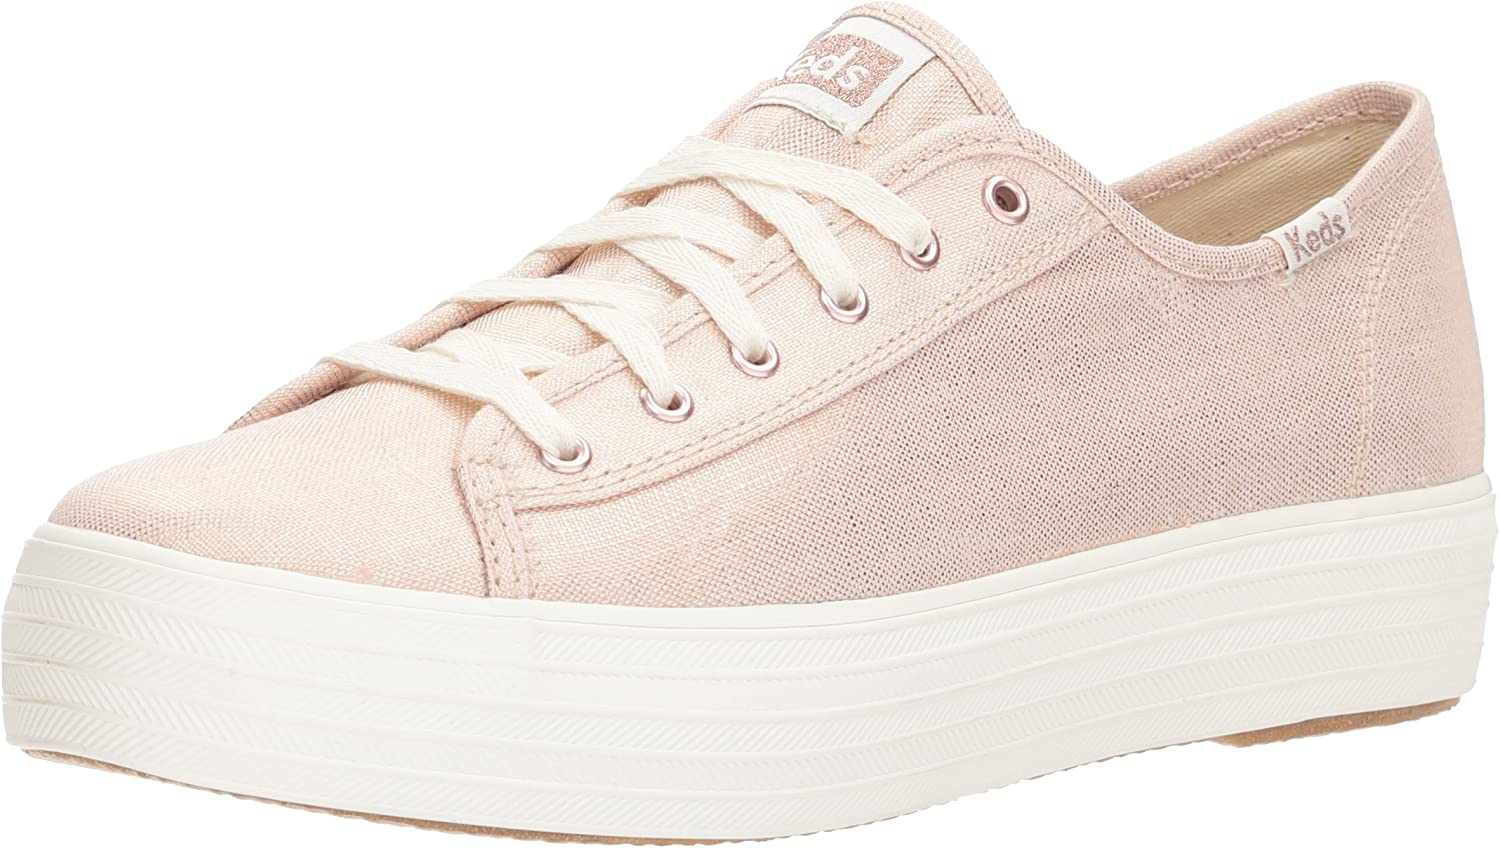 Keds Women's Triple Kick Metallic Linen Sneakers